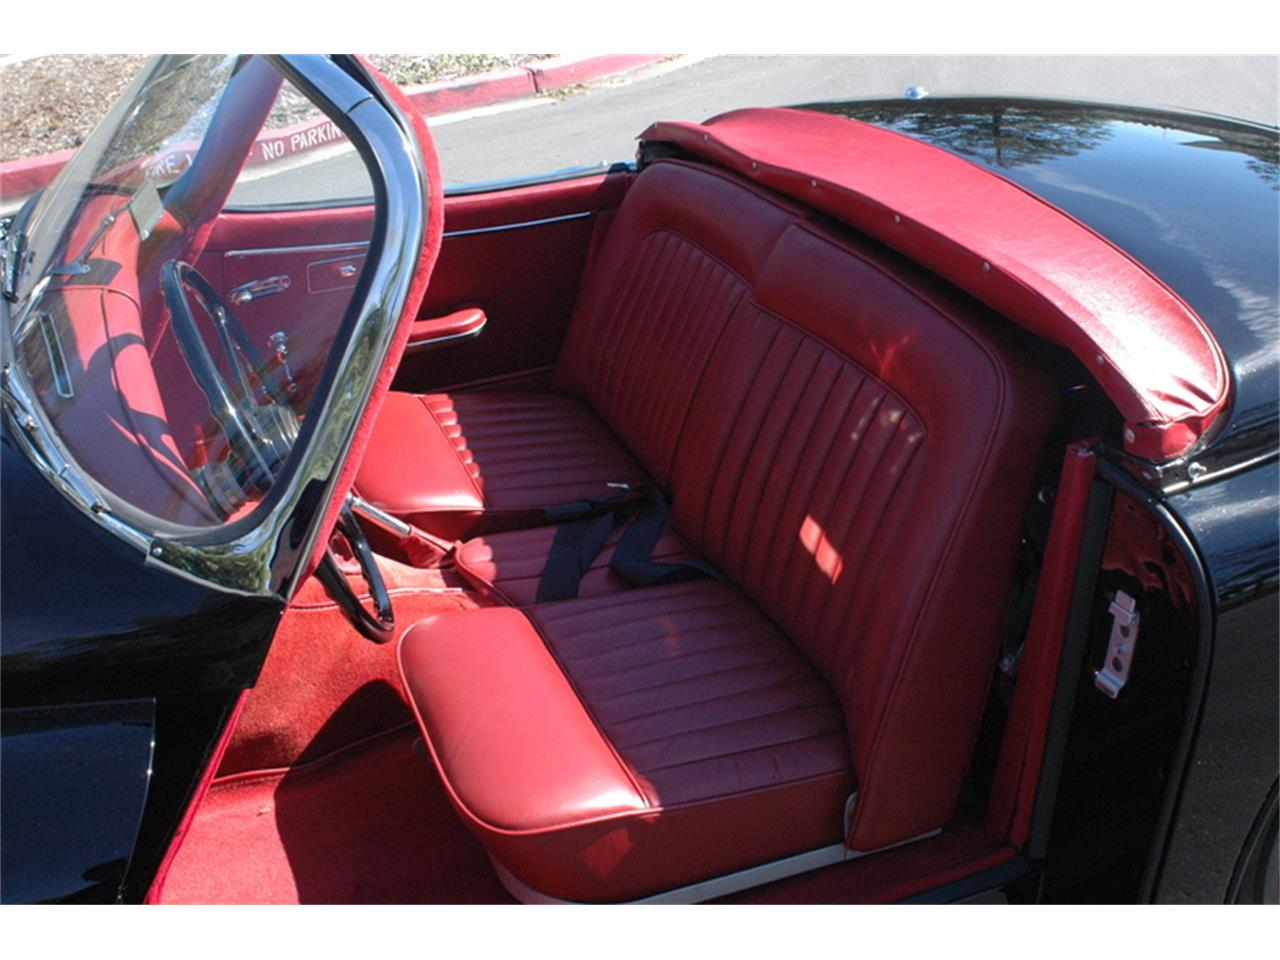 Large Picture of '58 Jaguar XK150 located in California - $189,000.00 Offered by a Private Seller - KR1G